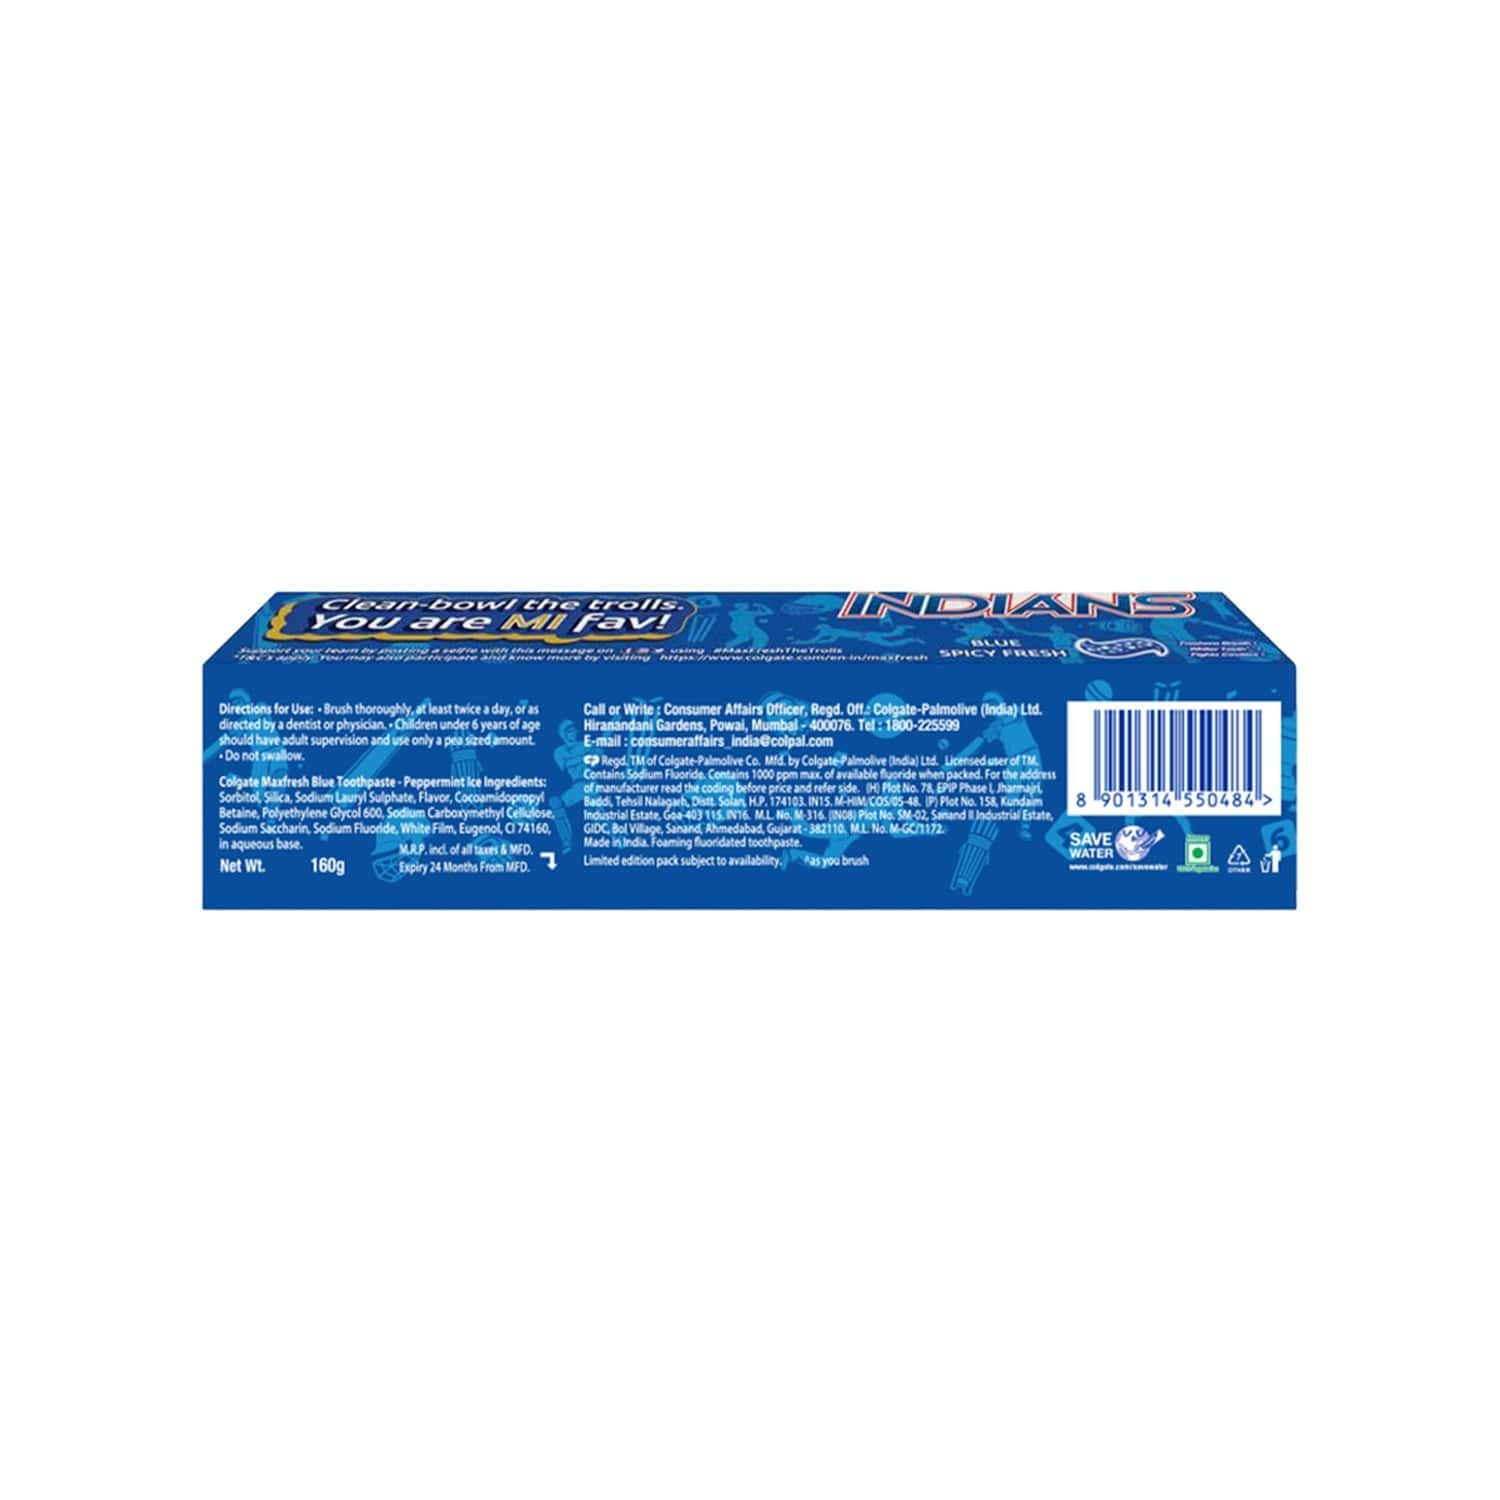 Colgate Maxfresh Blue Spicy Fresh Gel Toothpaste - 160 Gm - Mumbai Indians Special Edition Pack